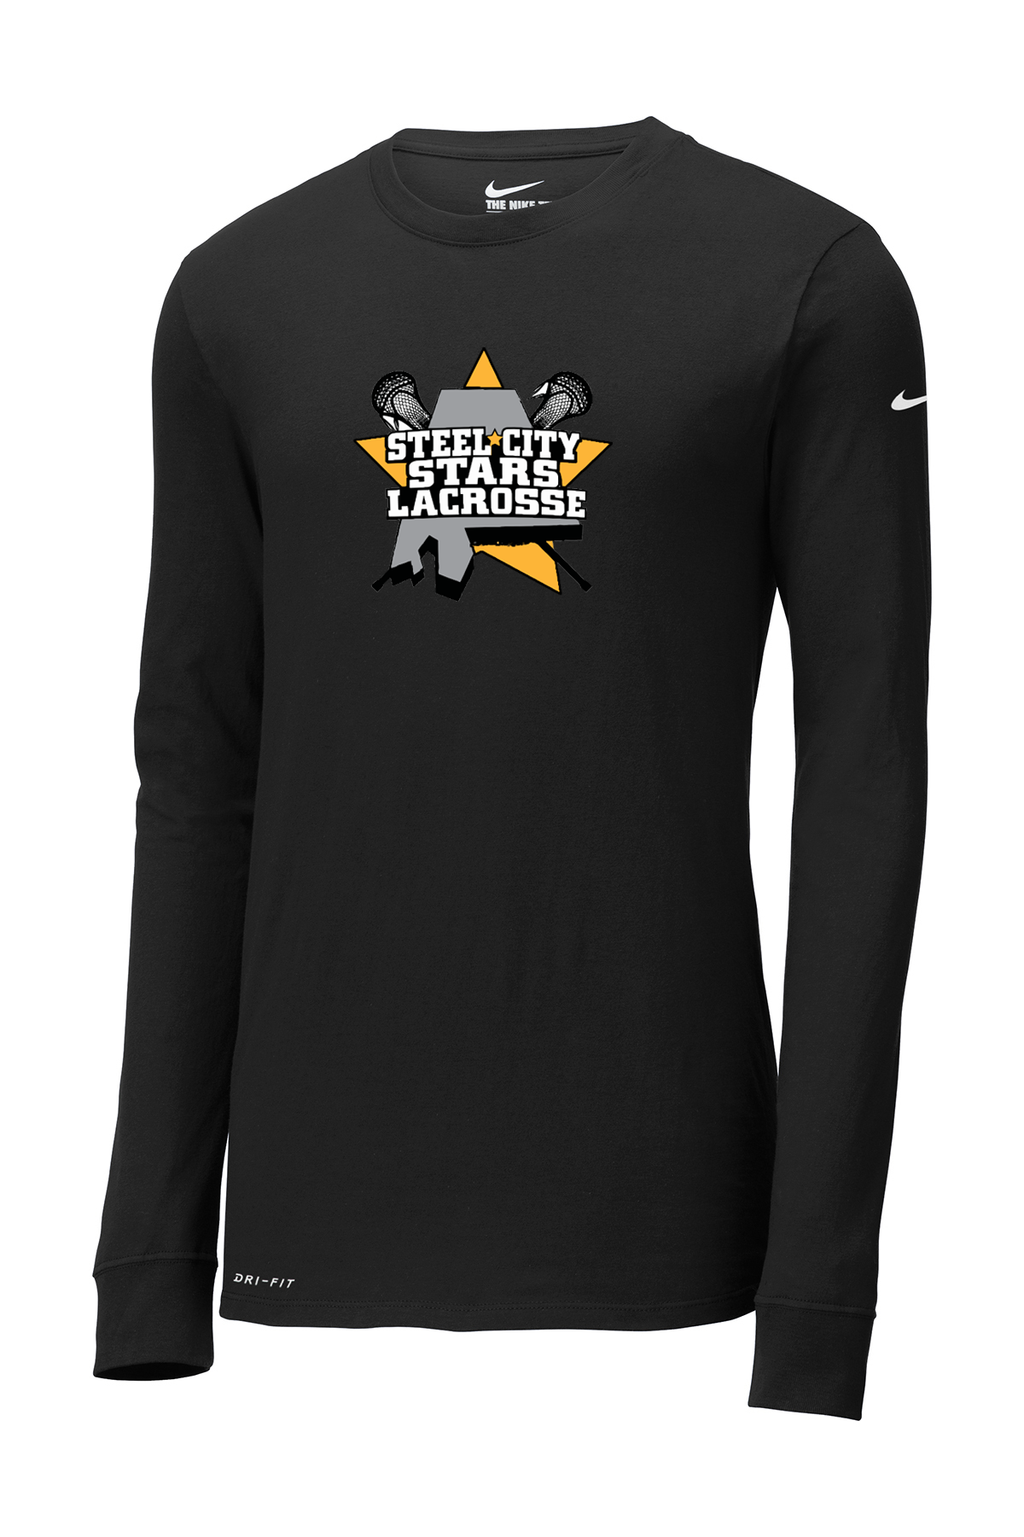 Stars Lacrosse Nike Dri-FIT Long Sleeve Tee